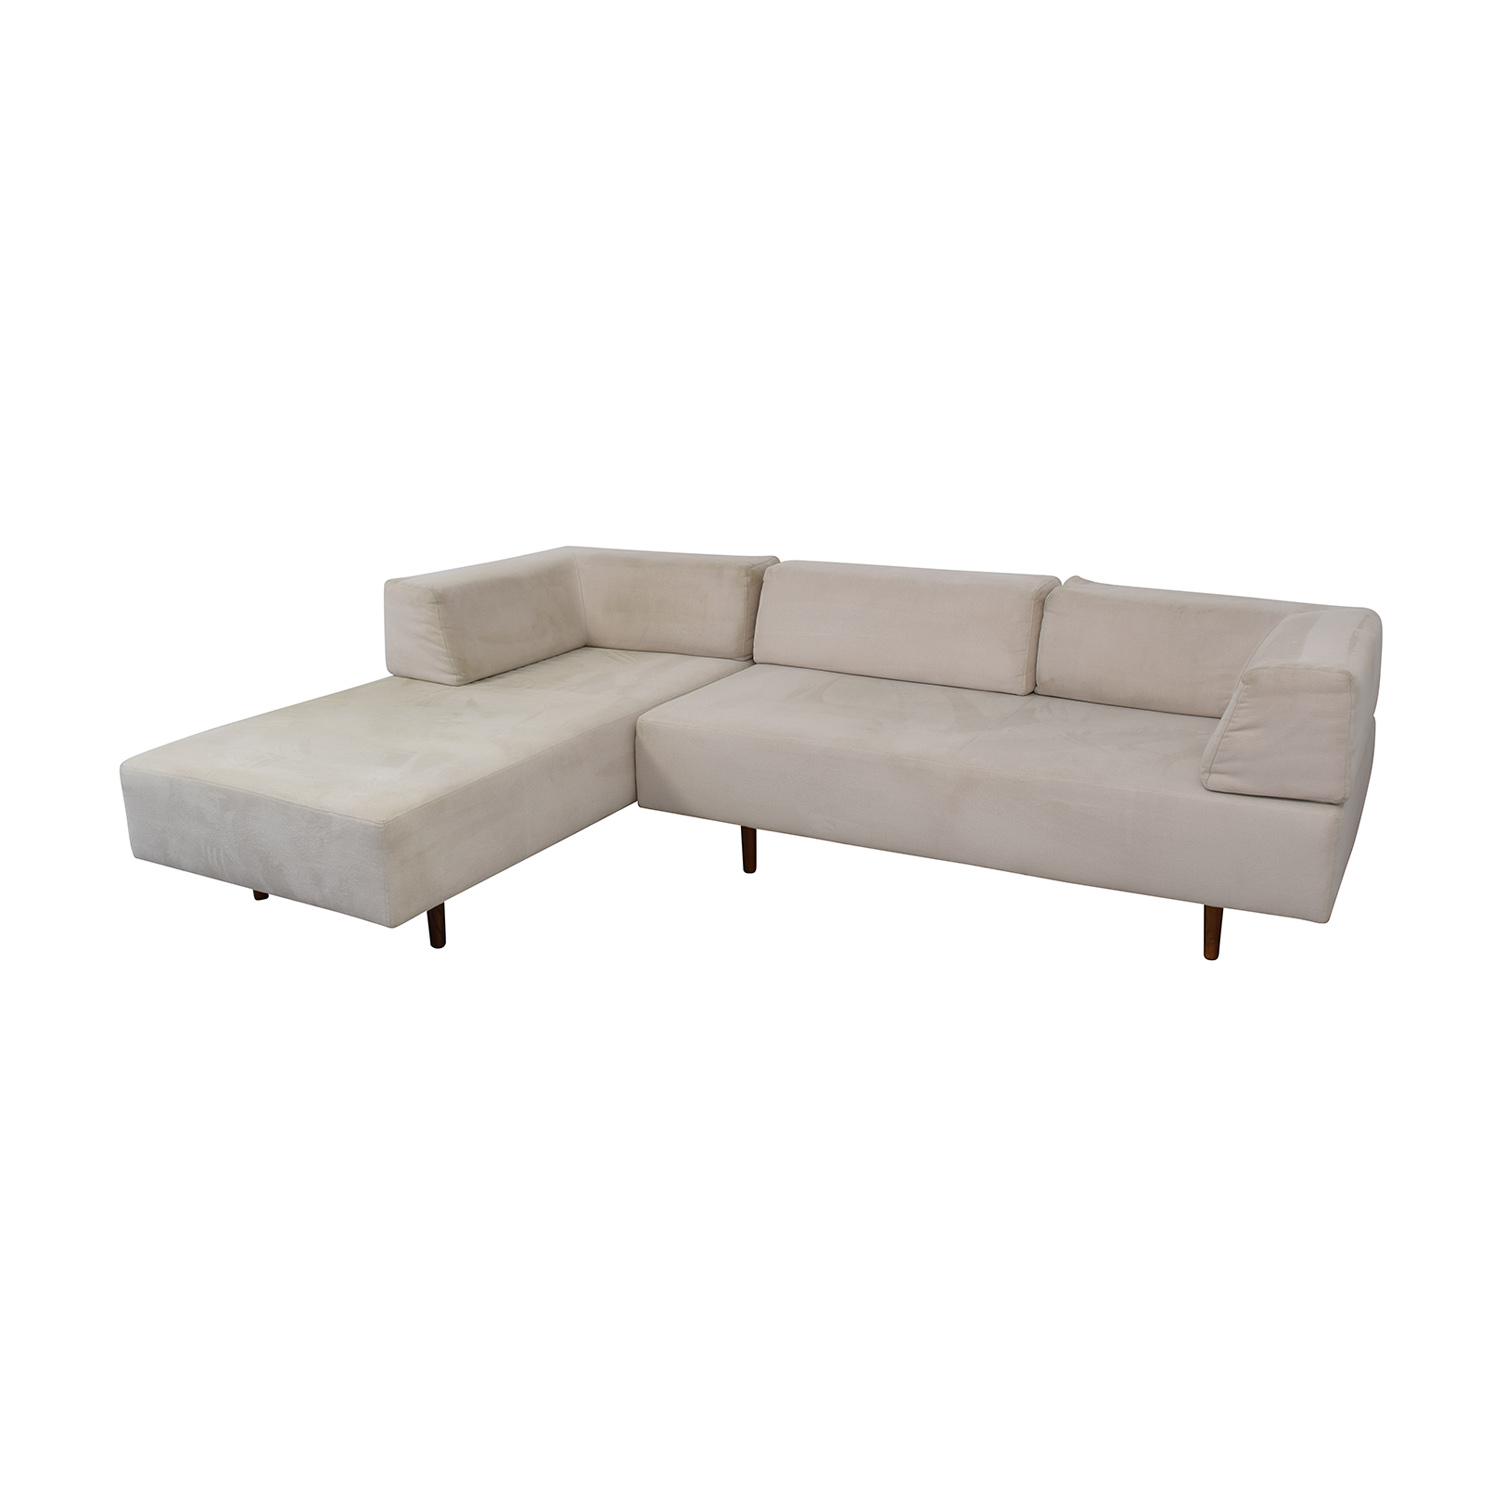 Sensational 77 Off West Elm West Elm Tillary Sectional Sofa And Chaise Lounge Sofas Ibusinesslaw Wood Chair Design Ideas Ibusinesslaworg